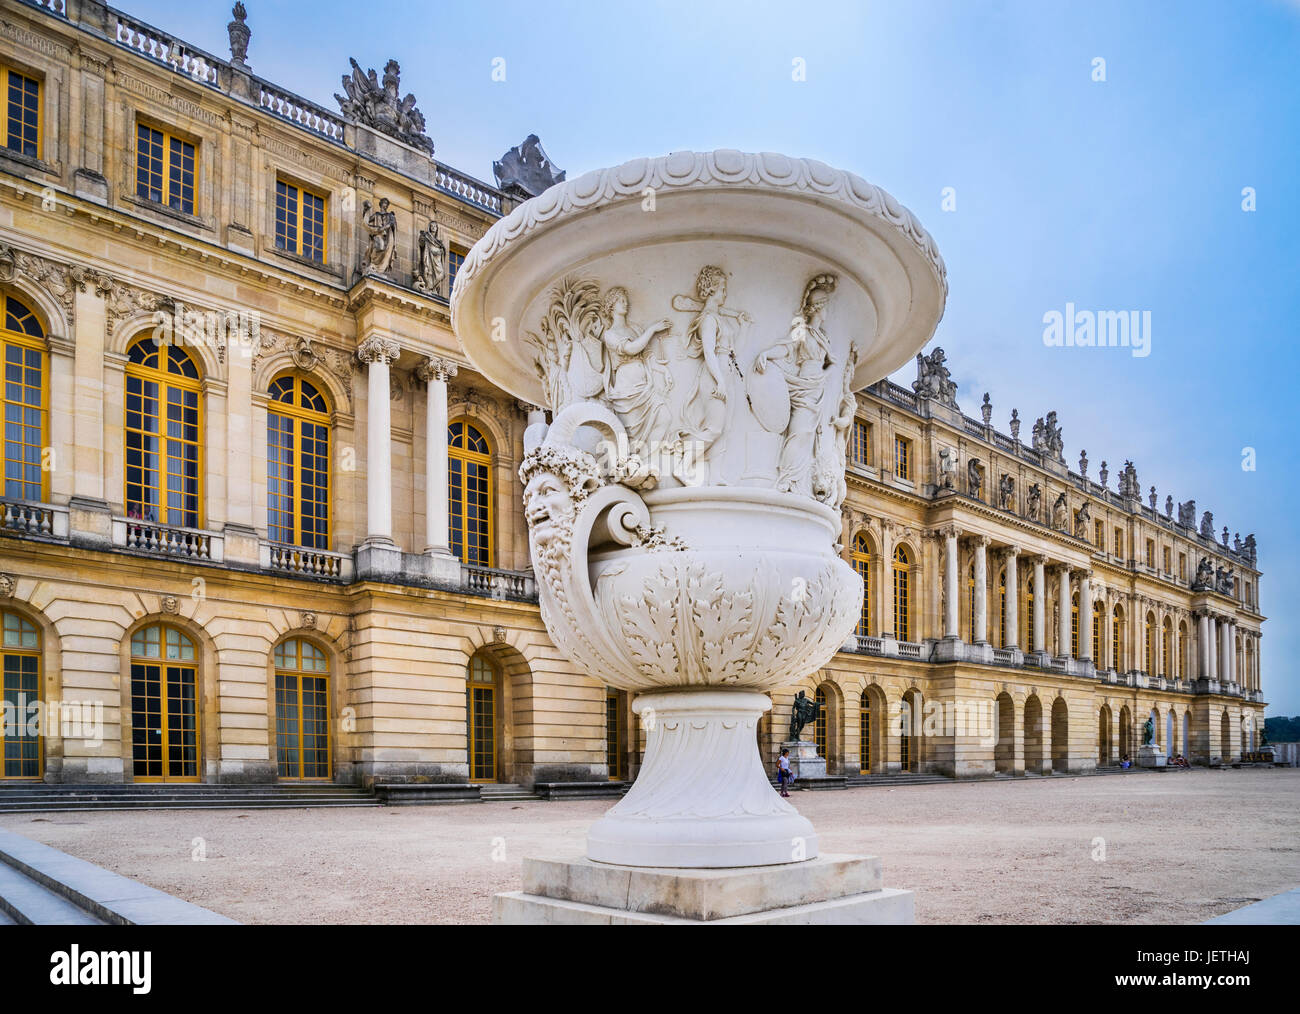 France, Ile-de-France, Garden facade of the Palace of Versailles and big marble vase - Stock Image